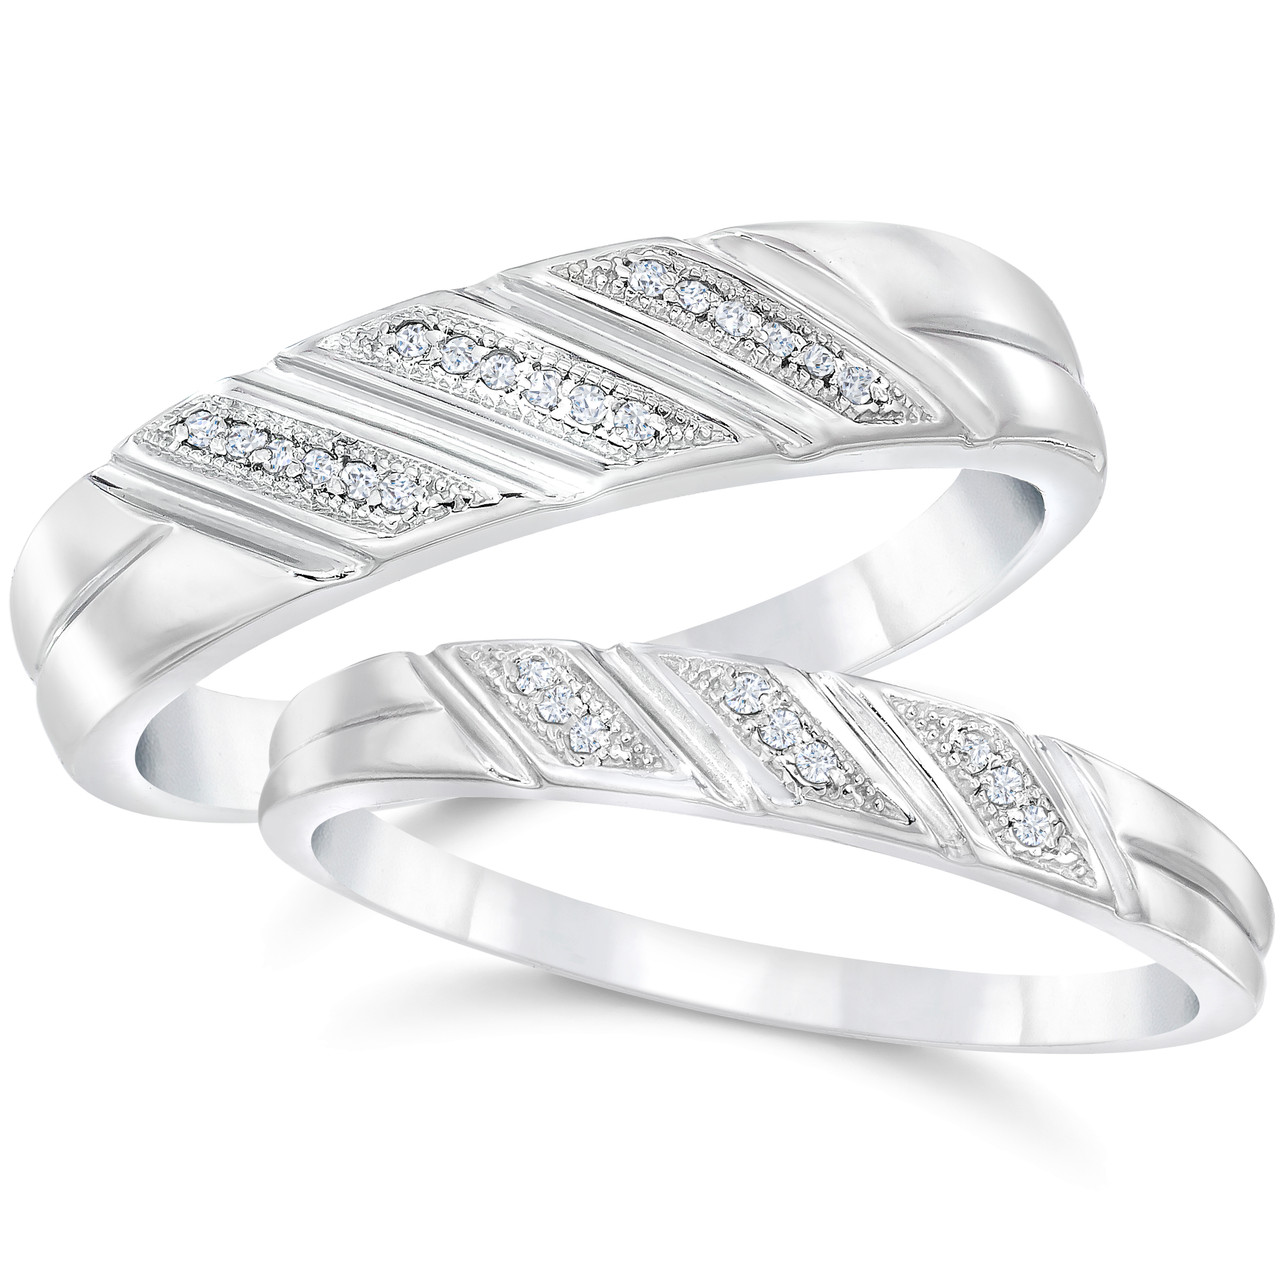 His And Her Wedding Bands.Diamond Wedding Rings Set 1 5cttw Matching His Hers Bands 10k White Gold H I I1 I2